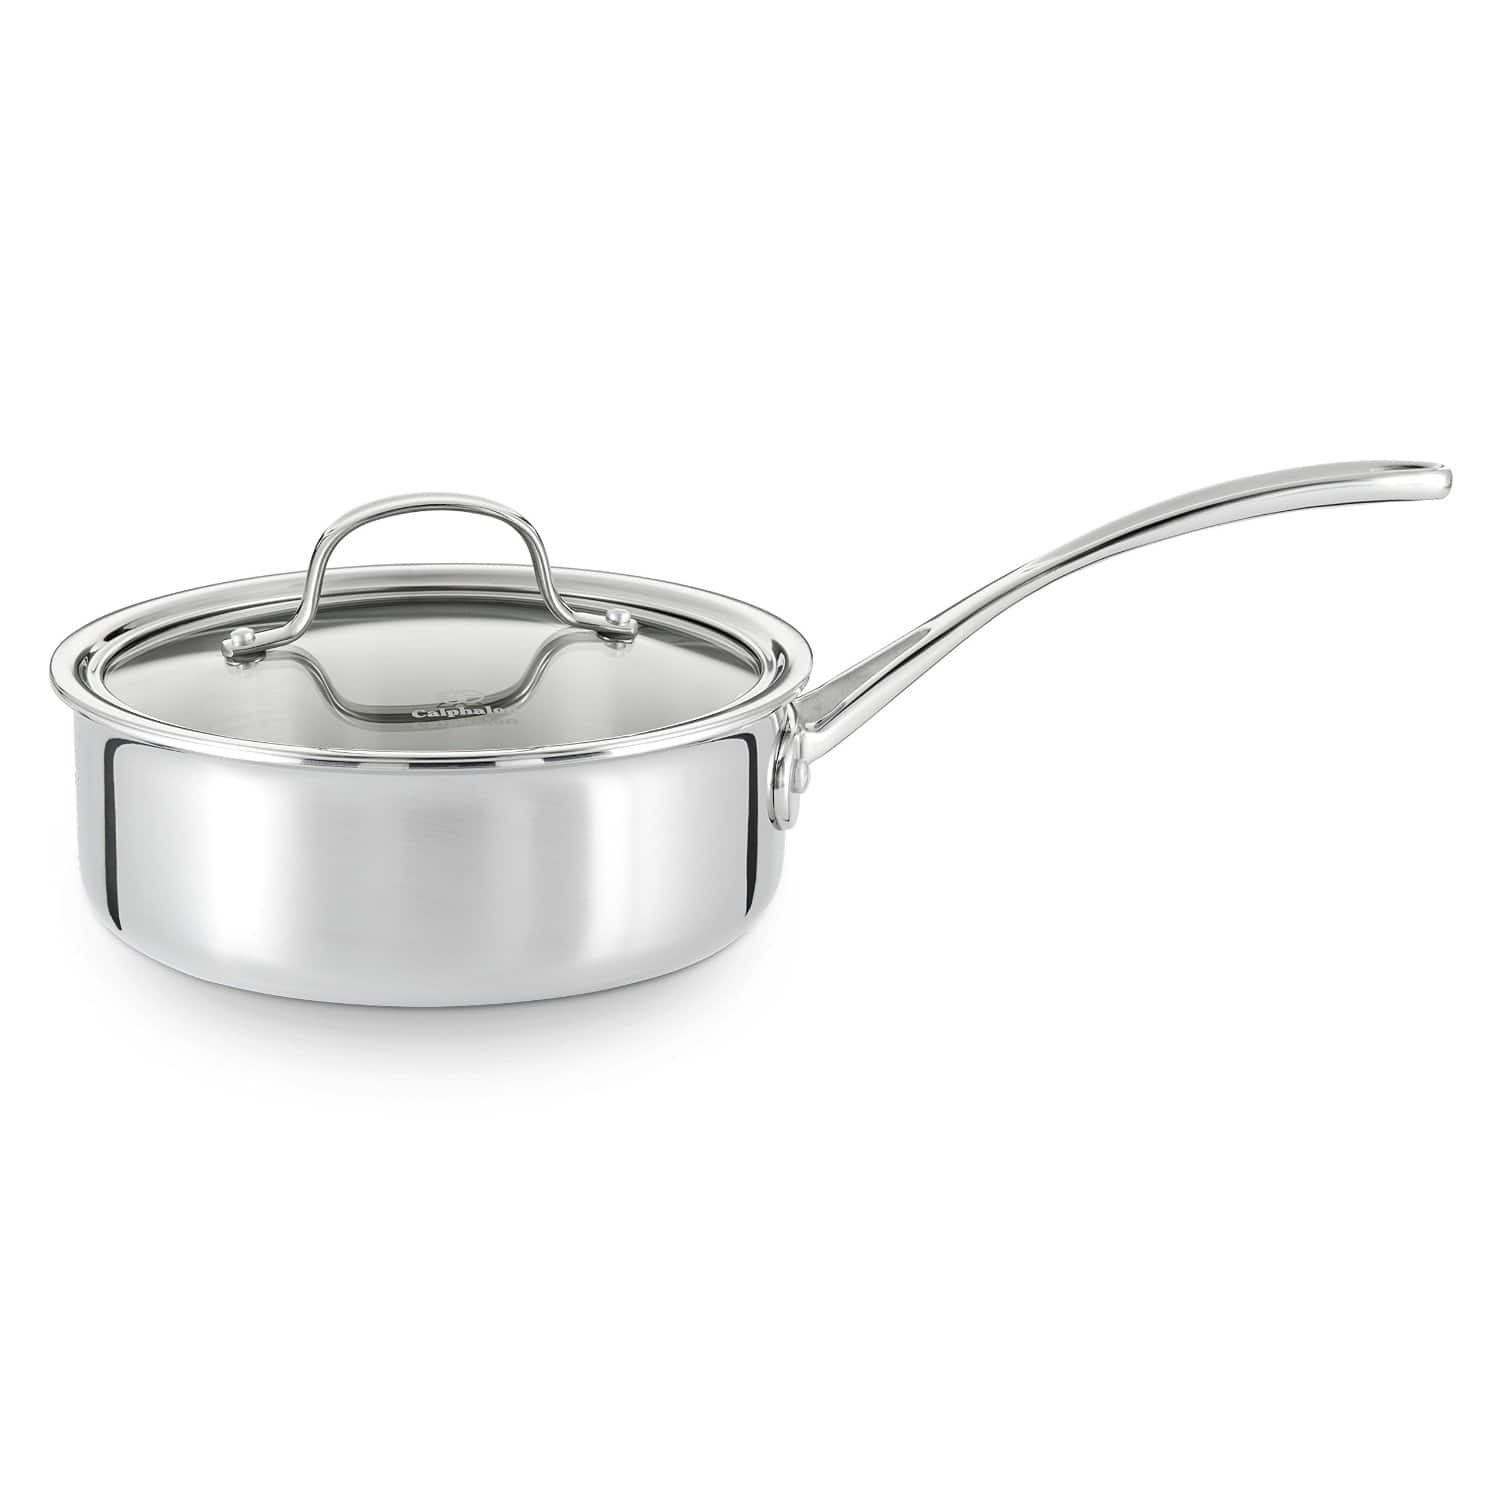 2.5-Quart Calphalon Tri-Ply Stainless Steel Covered Shallow Saucepan  $25.50